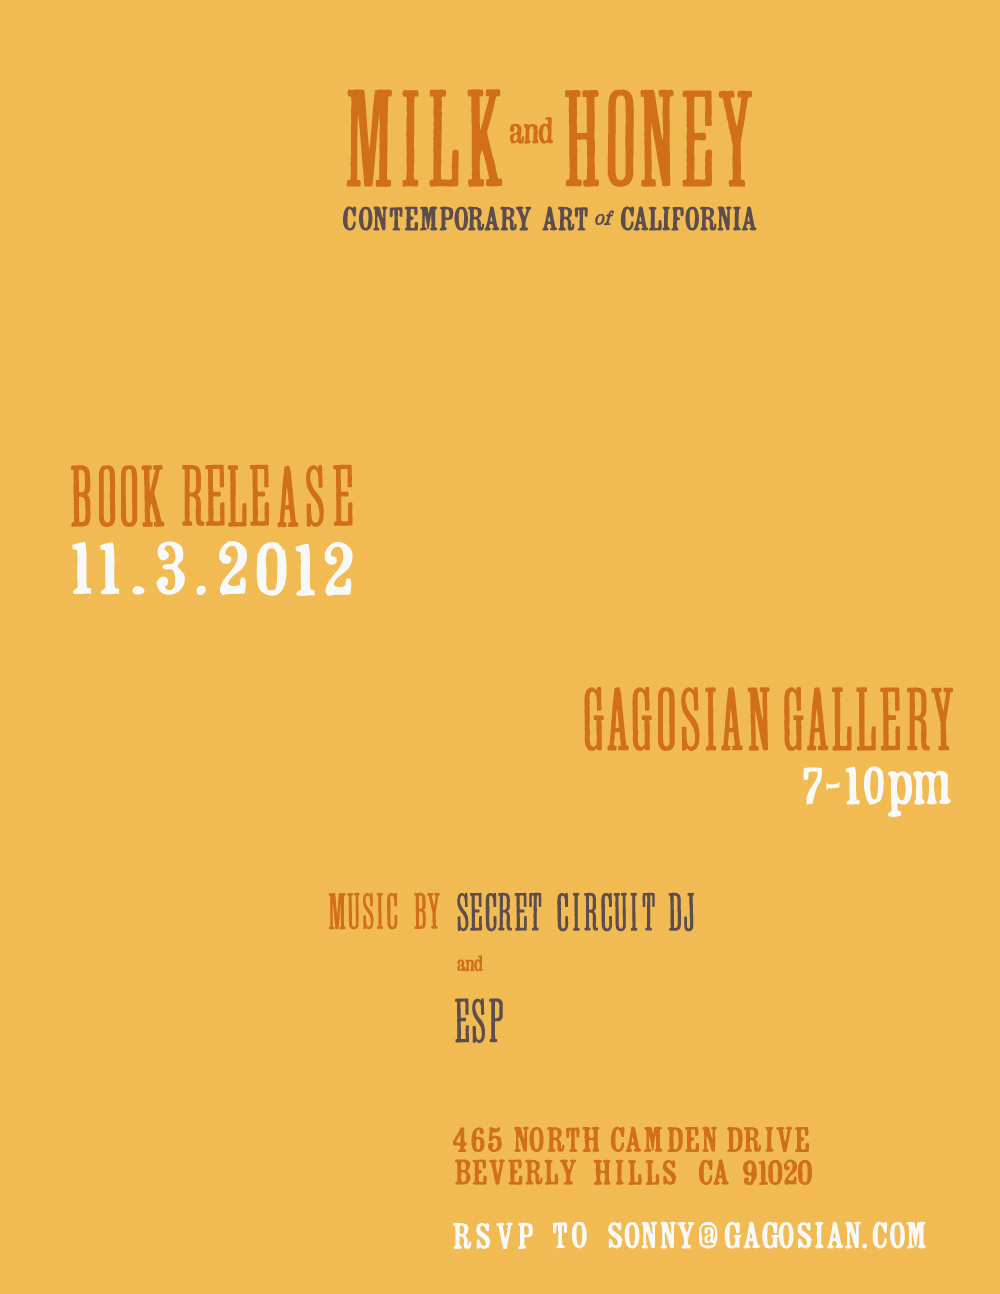 "Gagosian Gallery in Los Angeles is hosting the book release party for Milk and Honey: Contemporary Art in California which features work not only by myself but also: Ed Ruscha, Steven Harrington, Richard Colman, Barry McGeee, Sage Vaughn, Megan Whitmarsh, Florencio Zavala, Ashley Snow Macomber, Andrew Shoultz, RETNA, Ed Templeton, Souther Salazar, Cleon Peterson and several others who call California home. Come out November 3rd! Most of us will be in attendance!  The book was written by Justin Van Hoy and you can now purchase your copy. Here's a bit about the book from the author: ""In the same spirit as Roger Gastman, Aaron Rose, and Jeffrey Deitch's recent seminal MOCA show: Art In The Streets, 'Milk and Honey' celebrates a group of contemporary artists with roots across various areas, including graffiti art, surf, and skate culture, and other uniquely californian influences. As is evident in that highly acclaimed museum show—as well as the current Pacific Standard Time show throughout los angeles—California affects trends and sets the stage nationally and internationally, for some of the most creative art being made in the world today."""